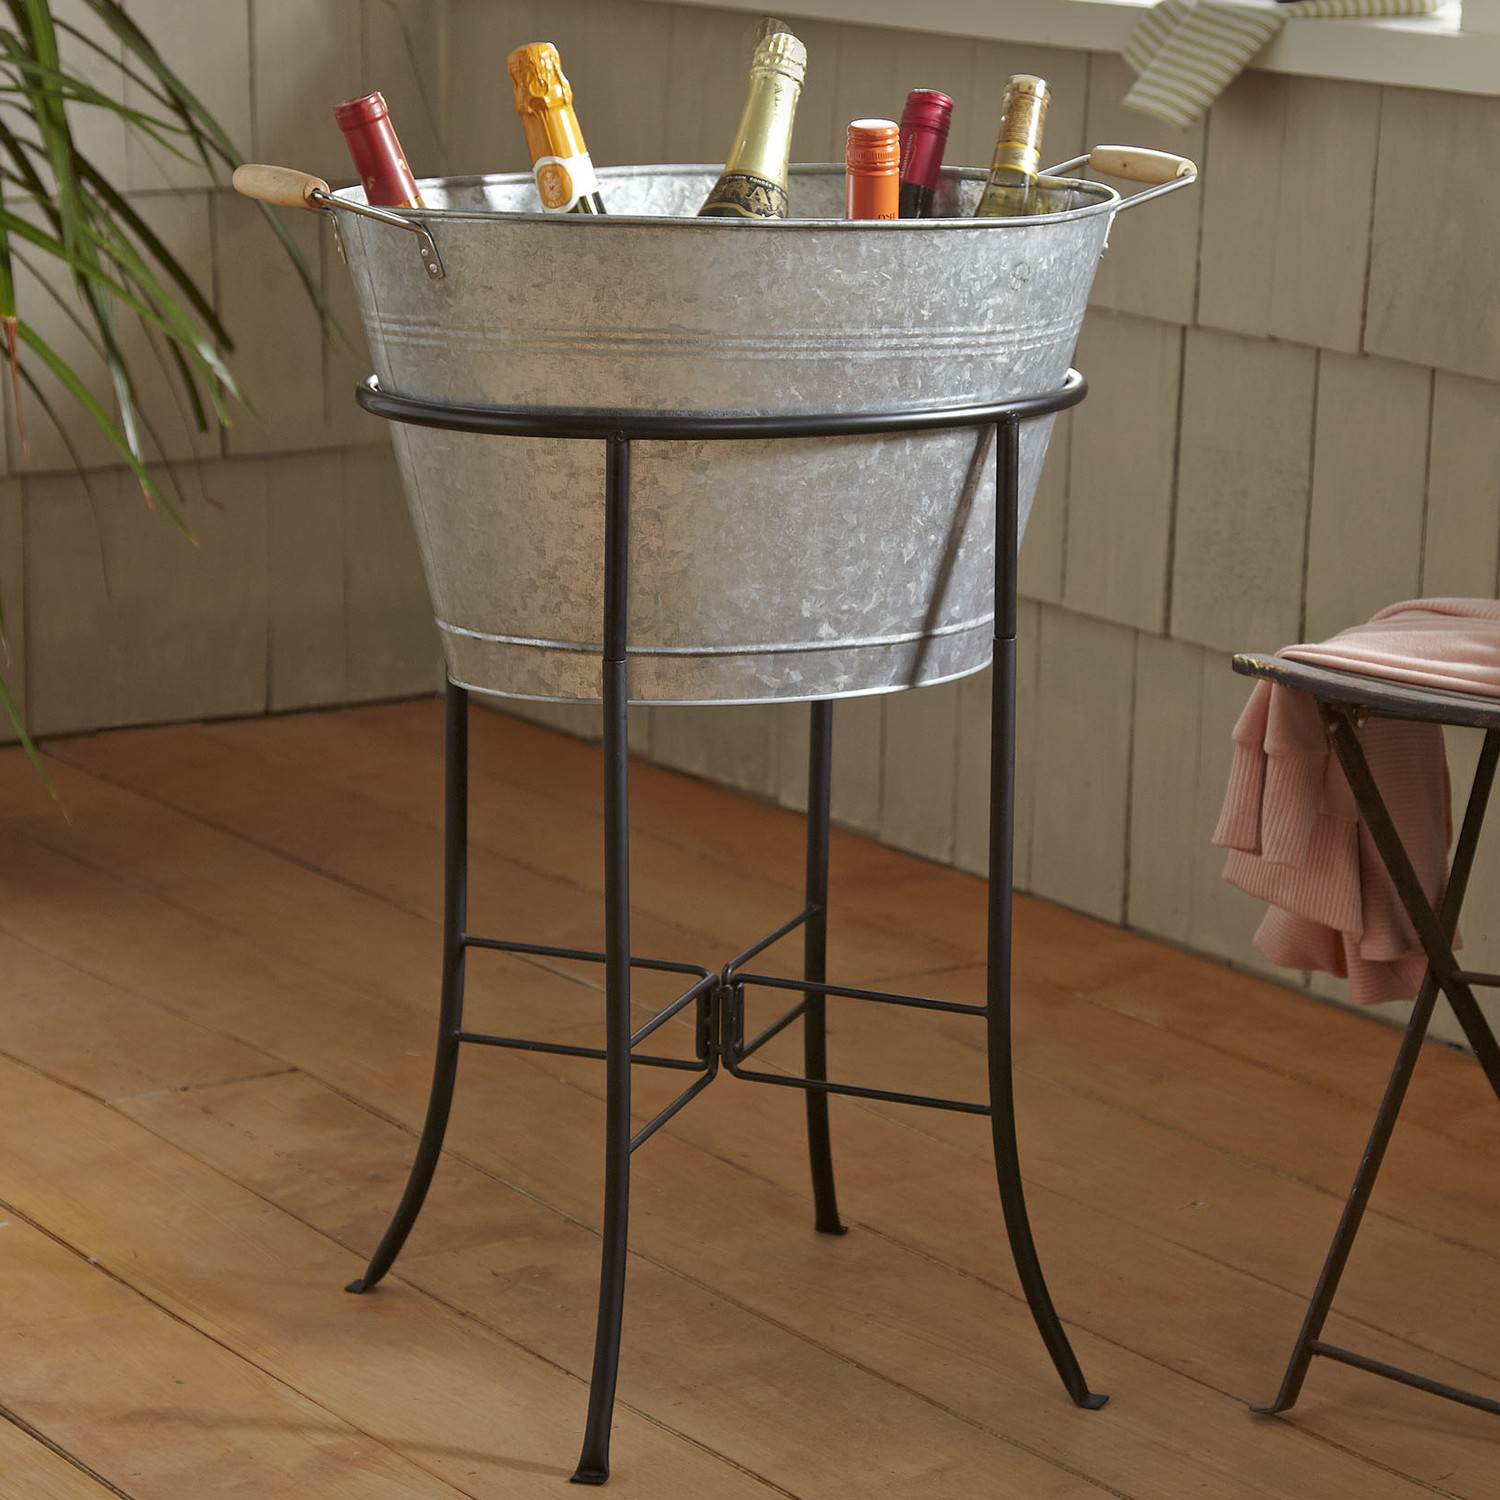 Cool Beverage Bucket With Stand Homesfeed